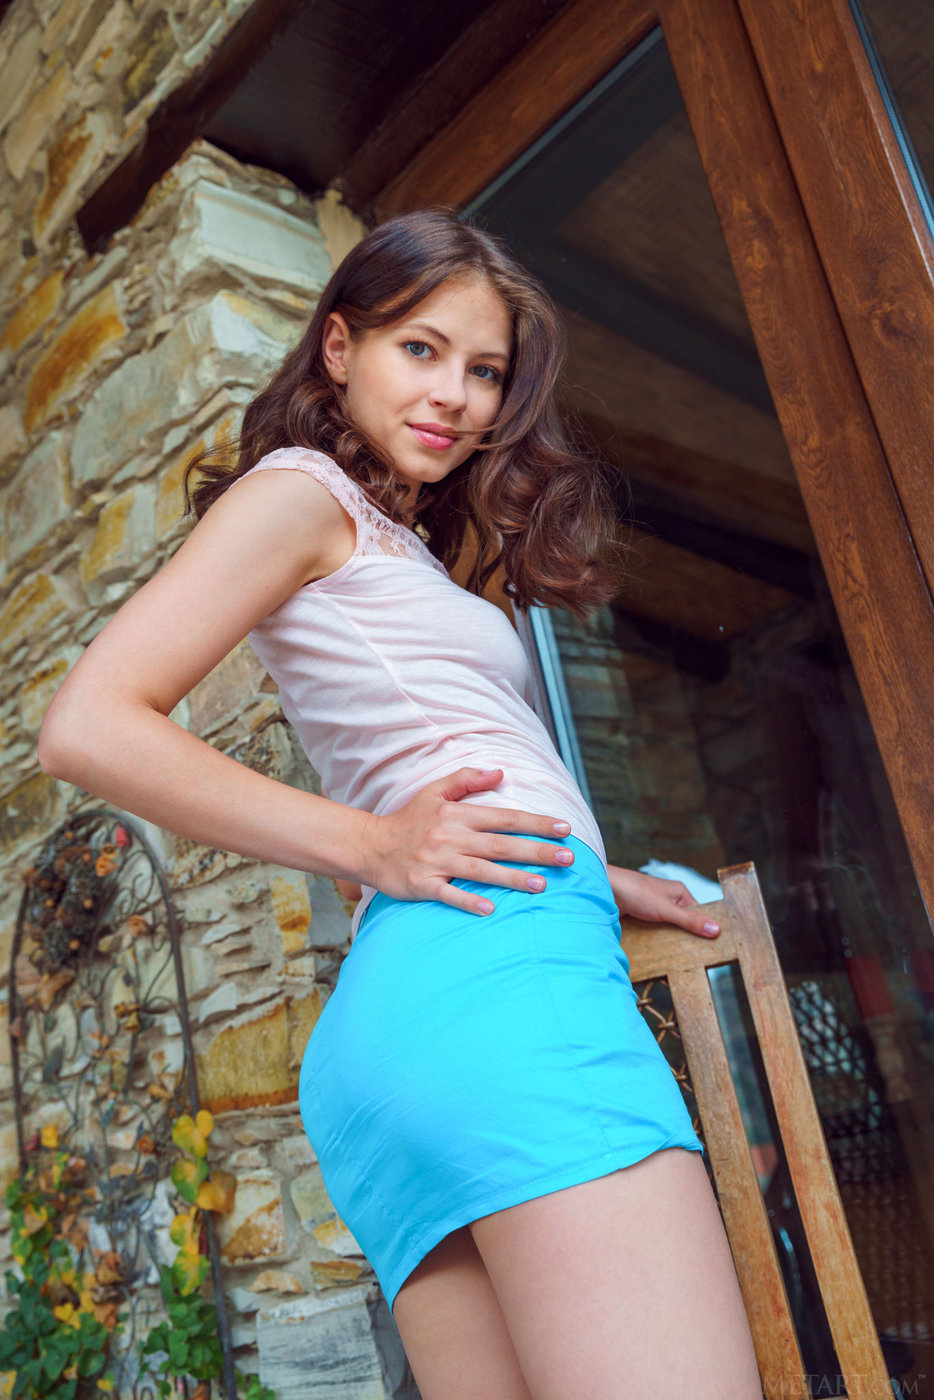 Sandy recommend Free mmf bisexual images